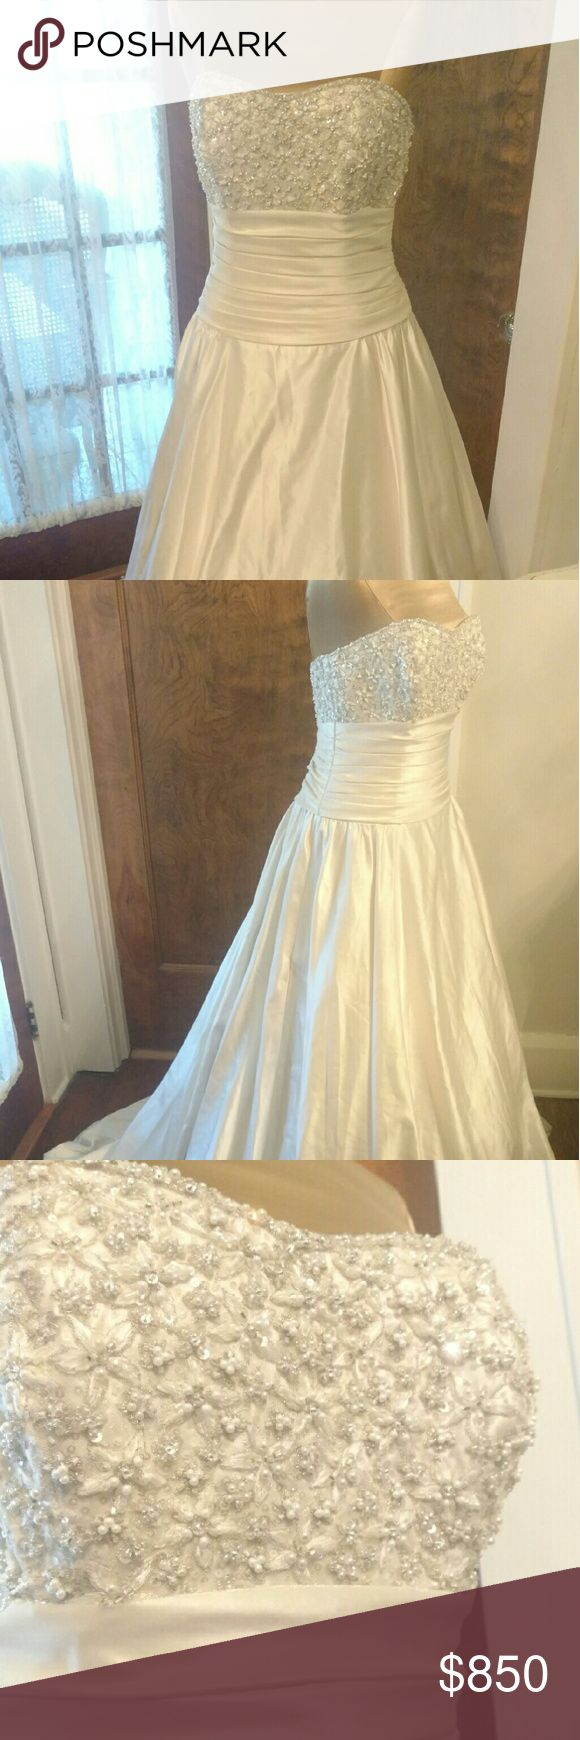 Allure Couture Wedding Gown Gorgeous size 10 Allure Couture wedding gown Dresses Wedding